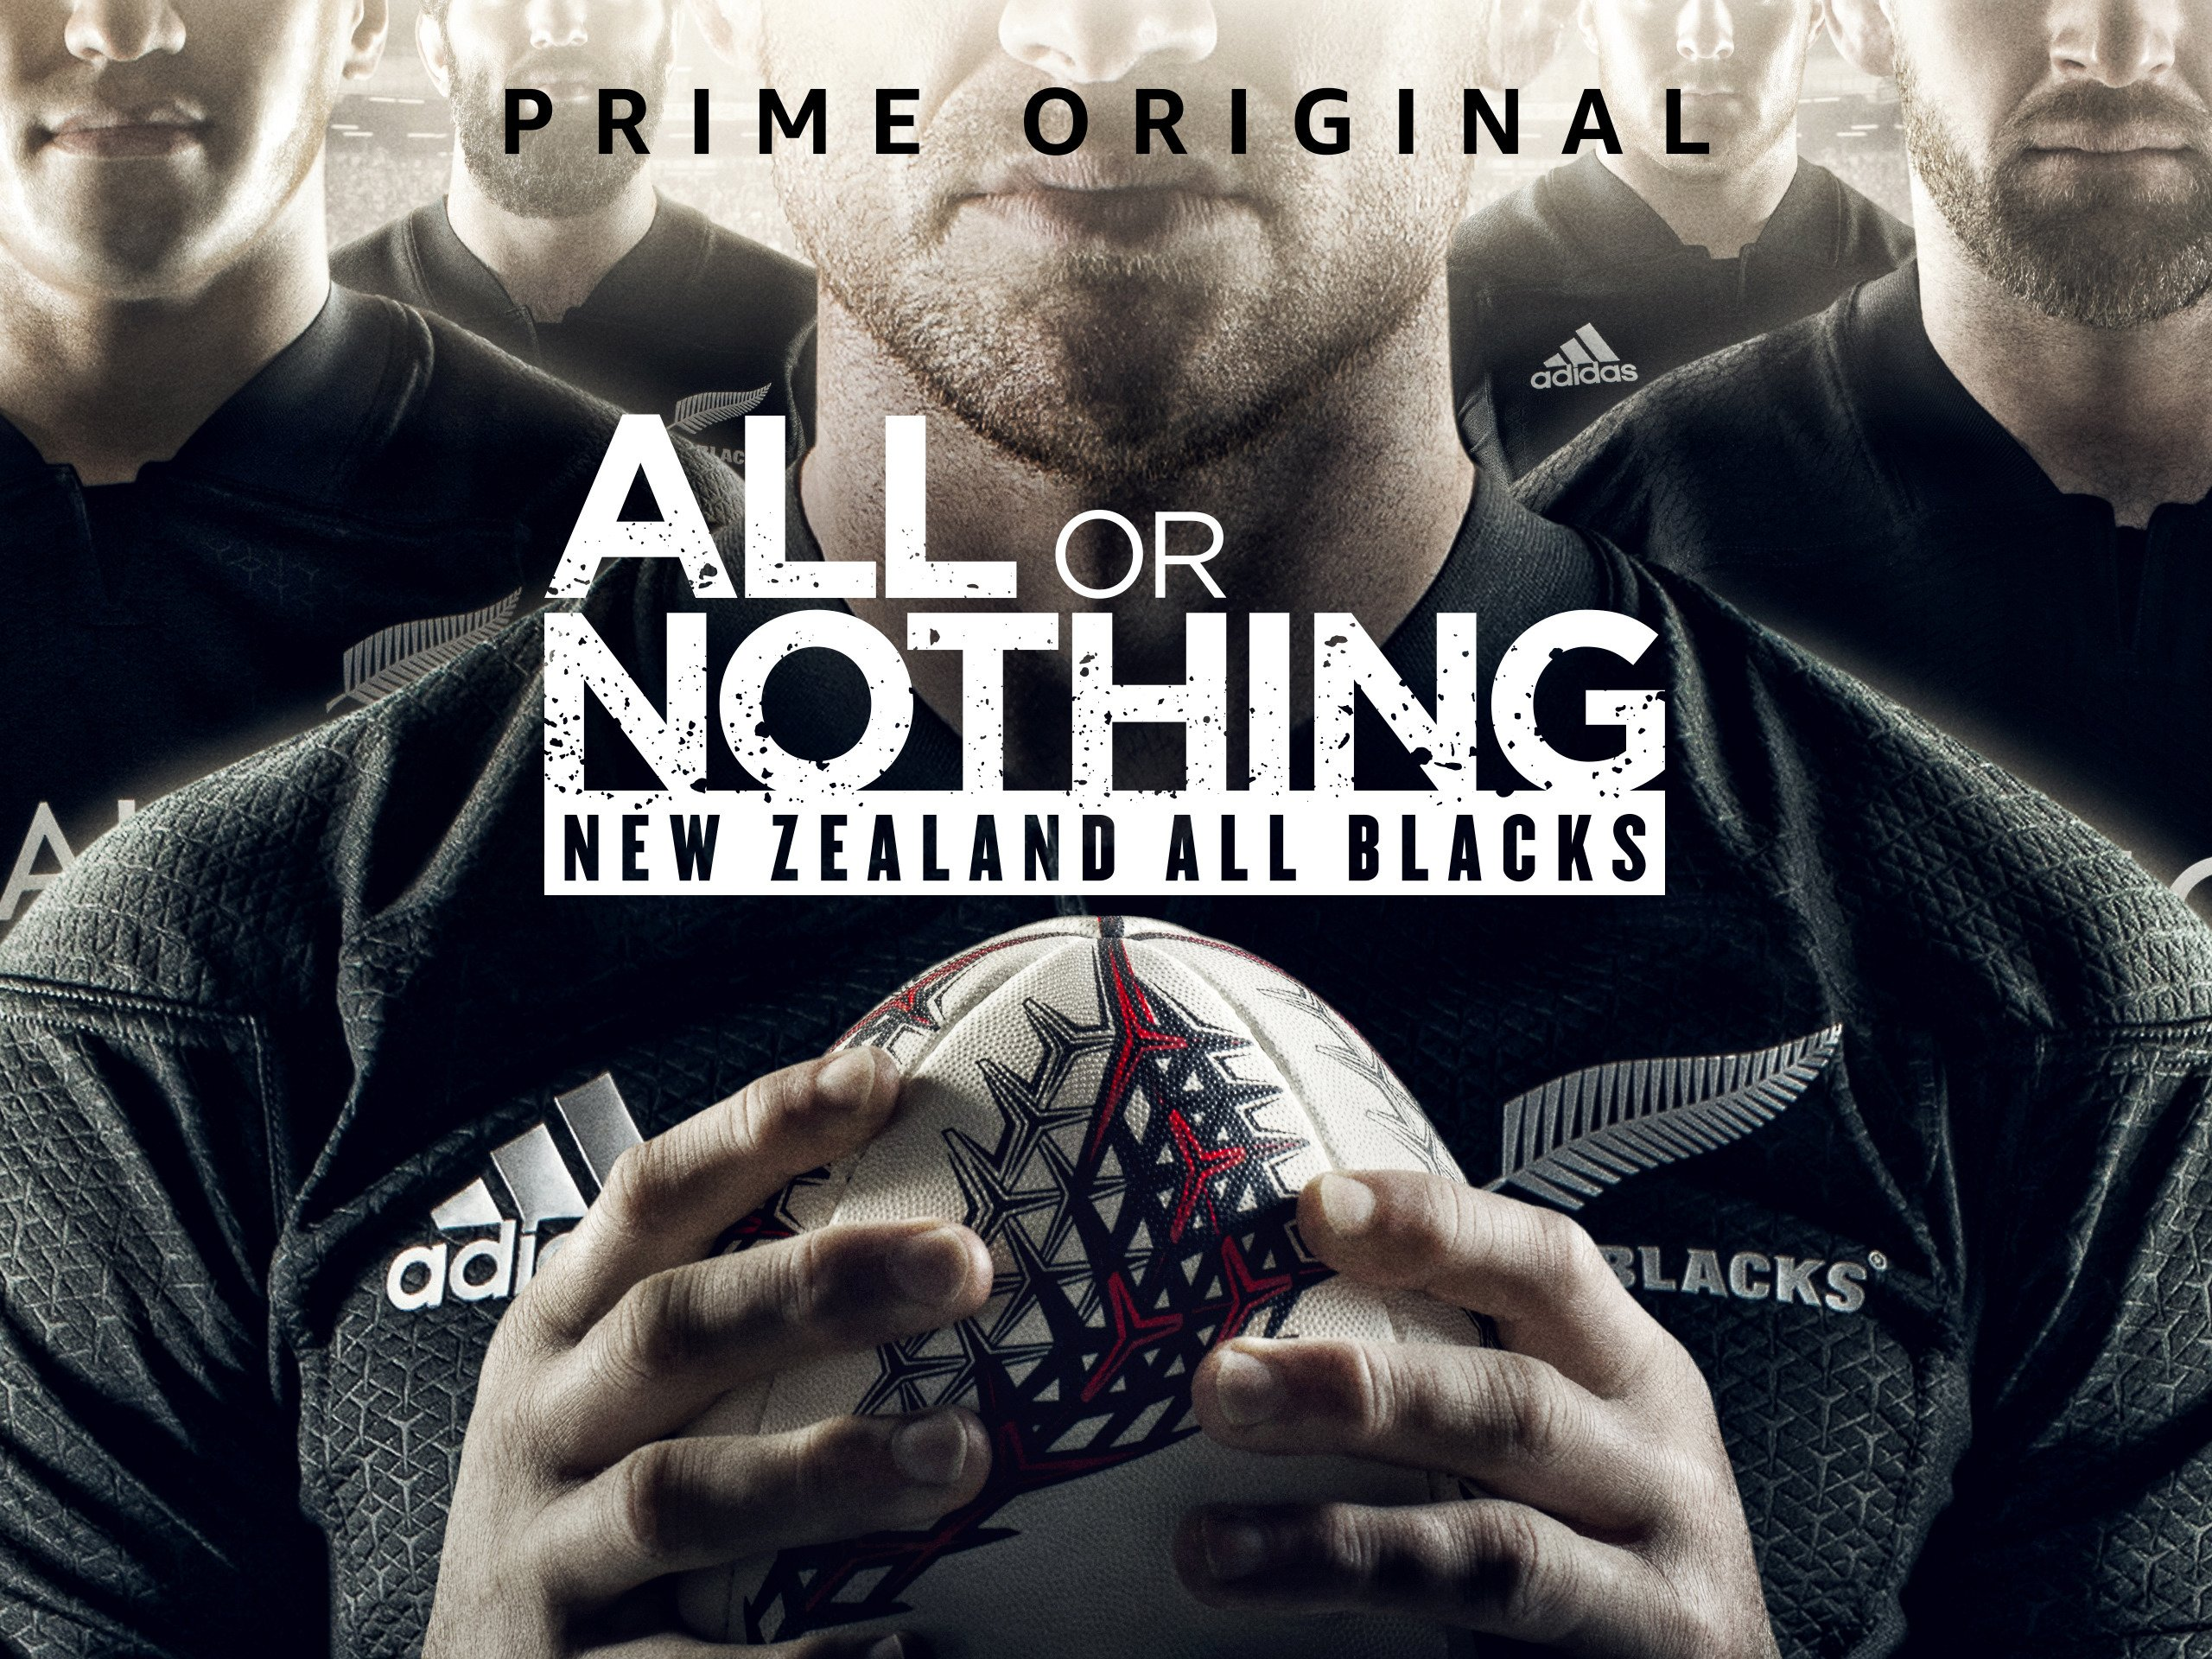 b6d97718093c Amazon.com  Watch All or Nothing  New Zealand All Blacks - Season 1 ...